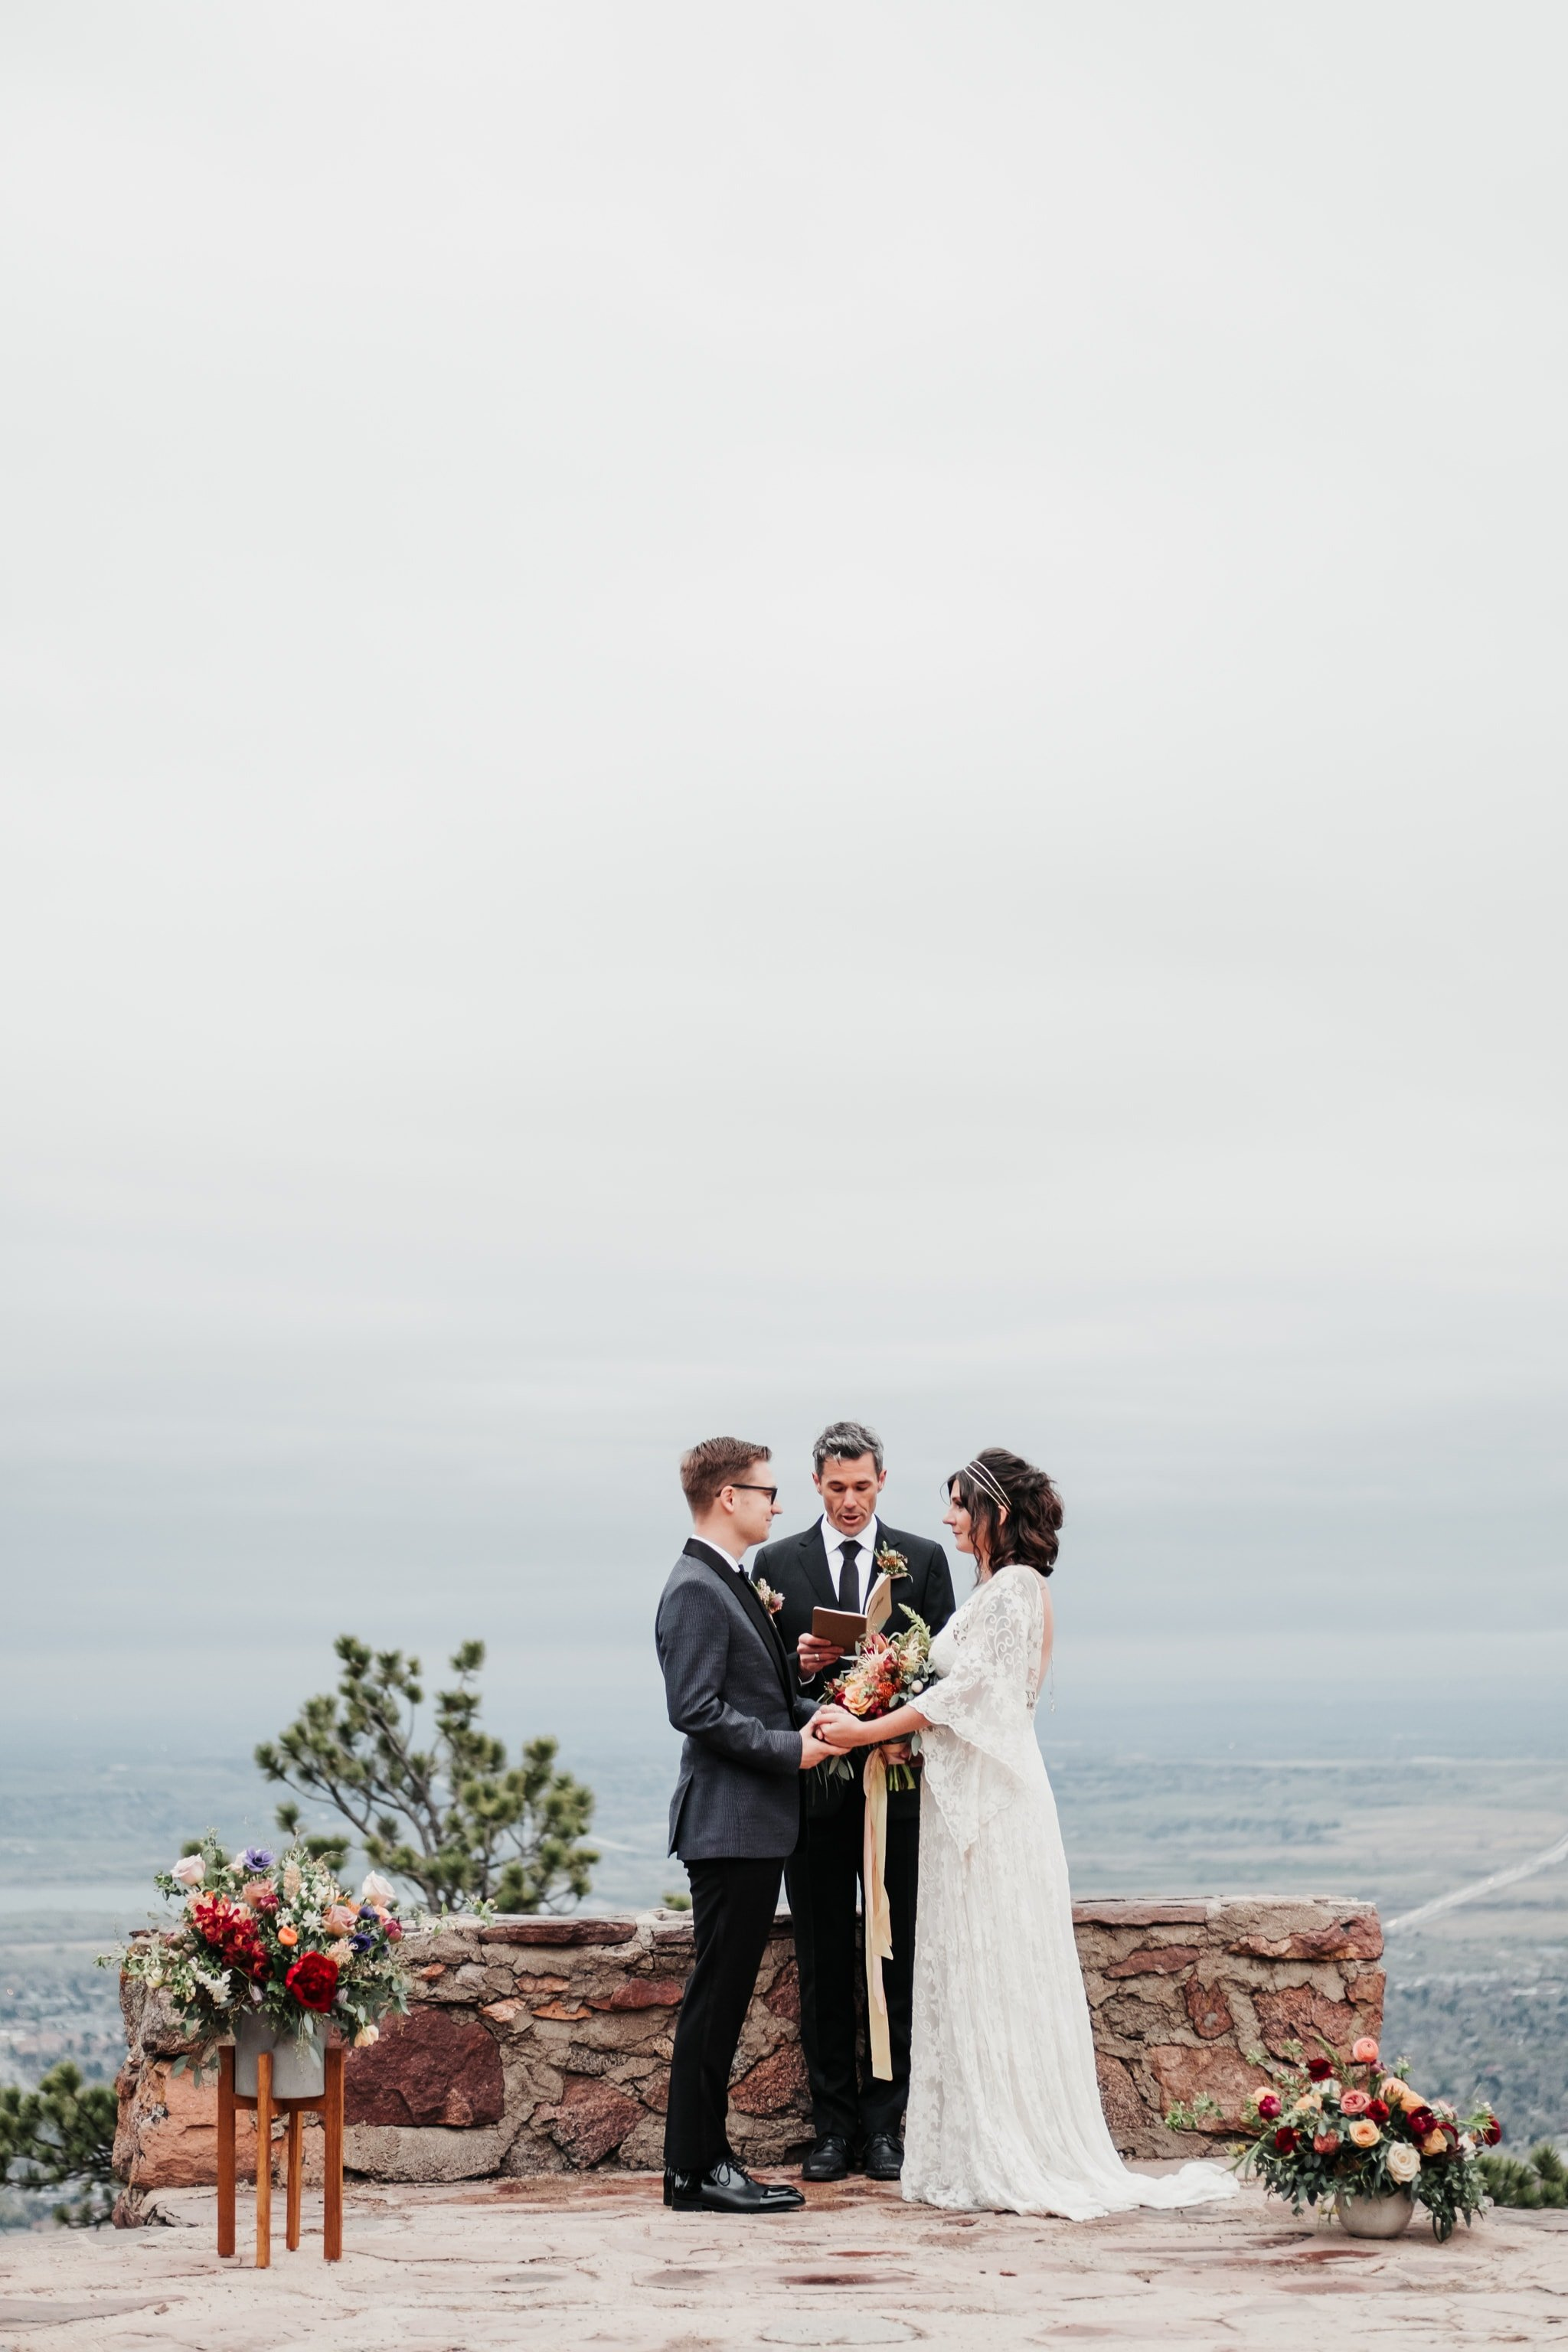 Sunrise Amphitheater Elopement, Boulder wedding photographer, Colorado wedding venue